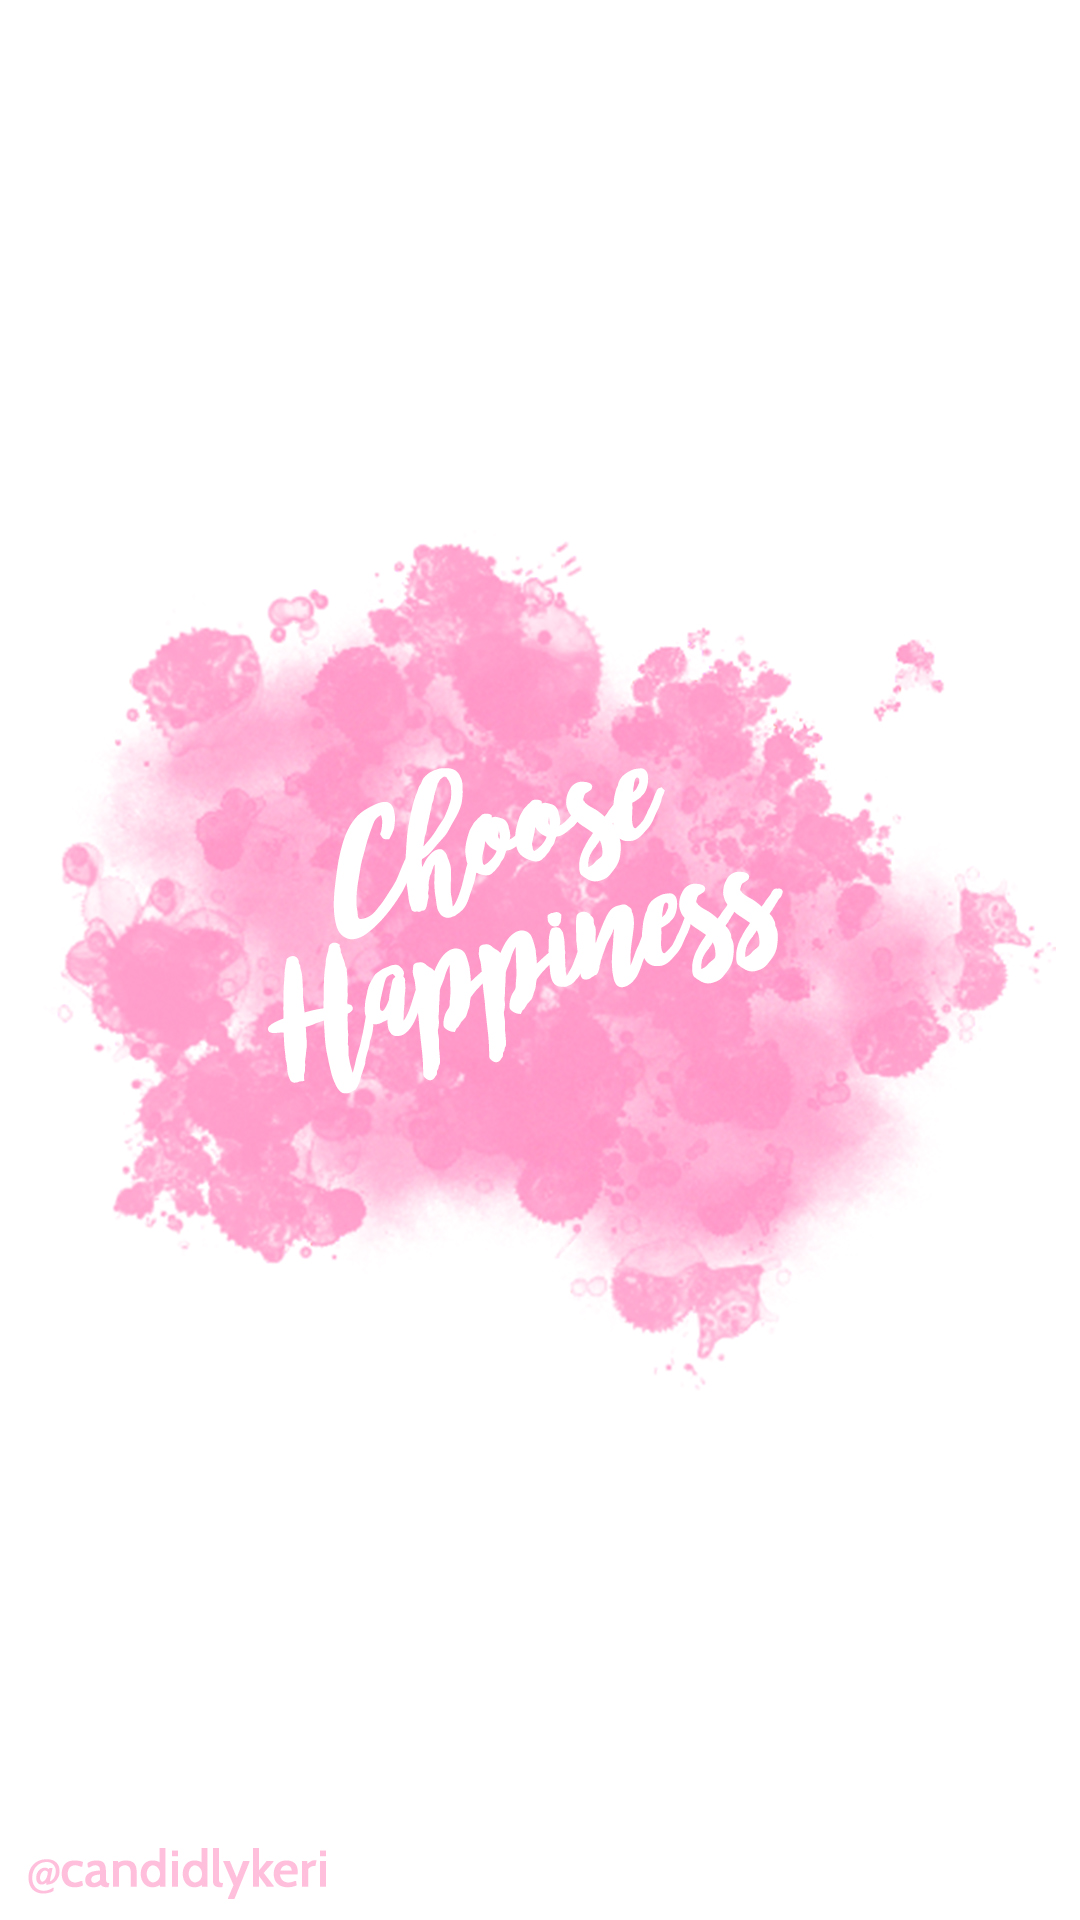 Choose-Happiness-quote-pink-splatter-paint-watercolor-with-black-and-white-flowers-free-do-wallpaper-wpc9203558